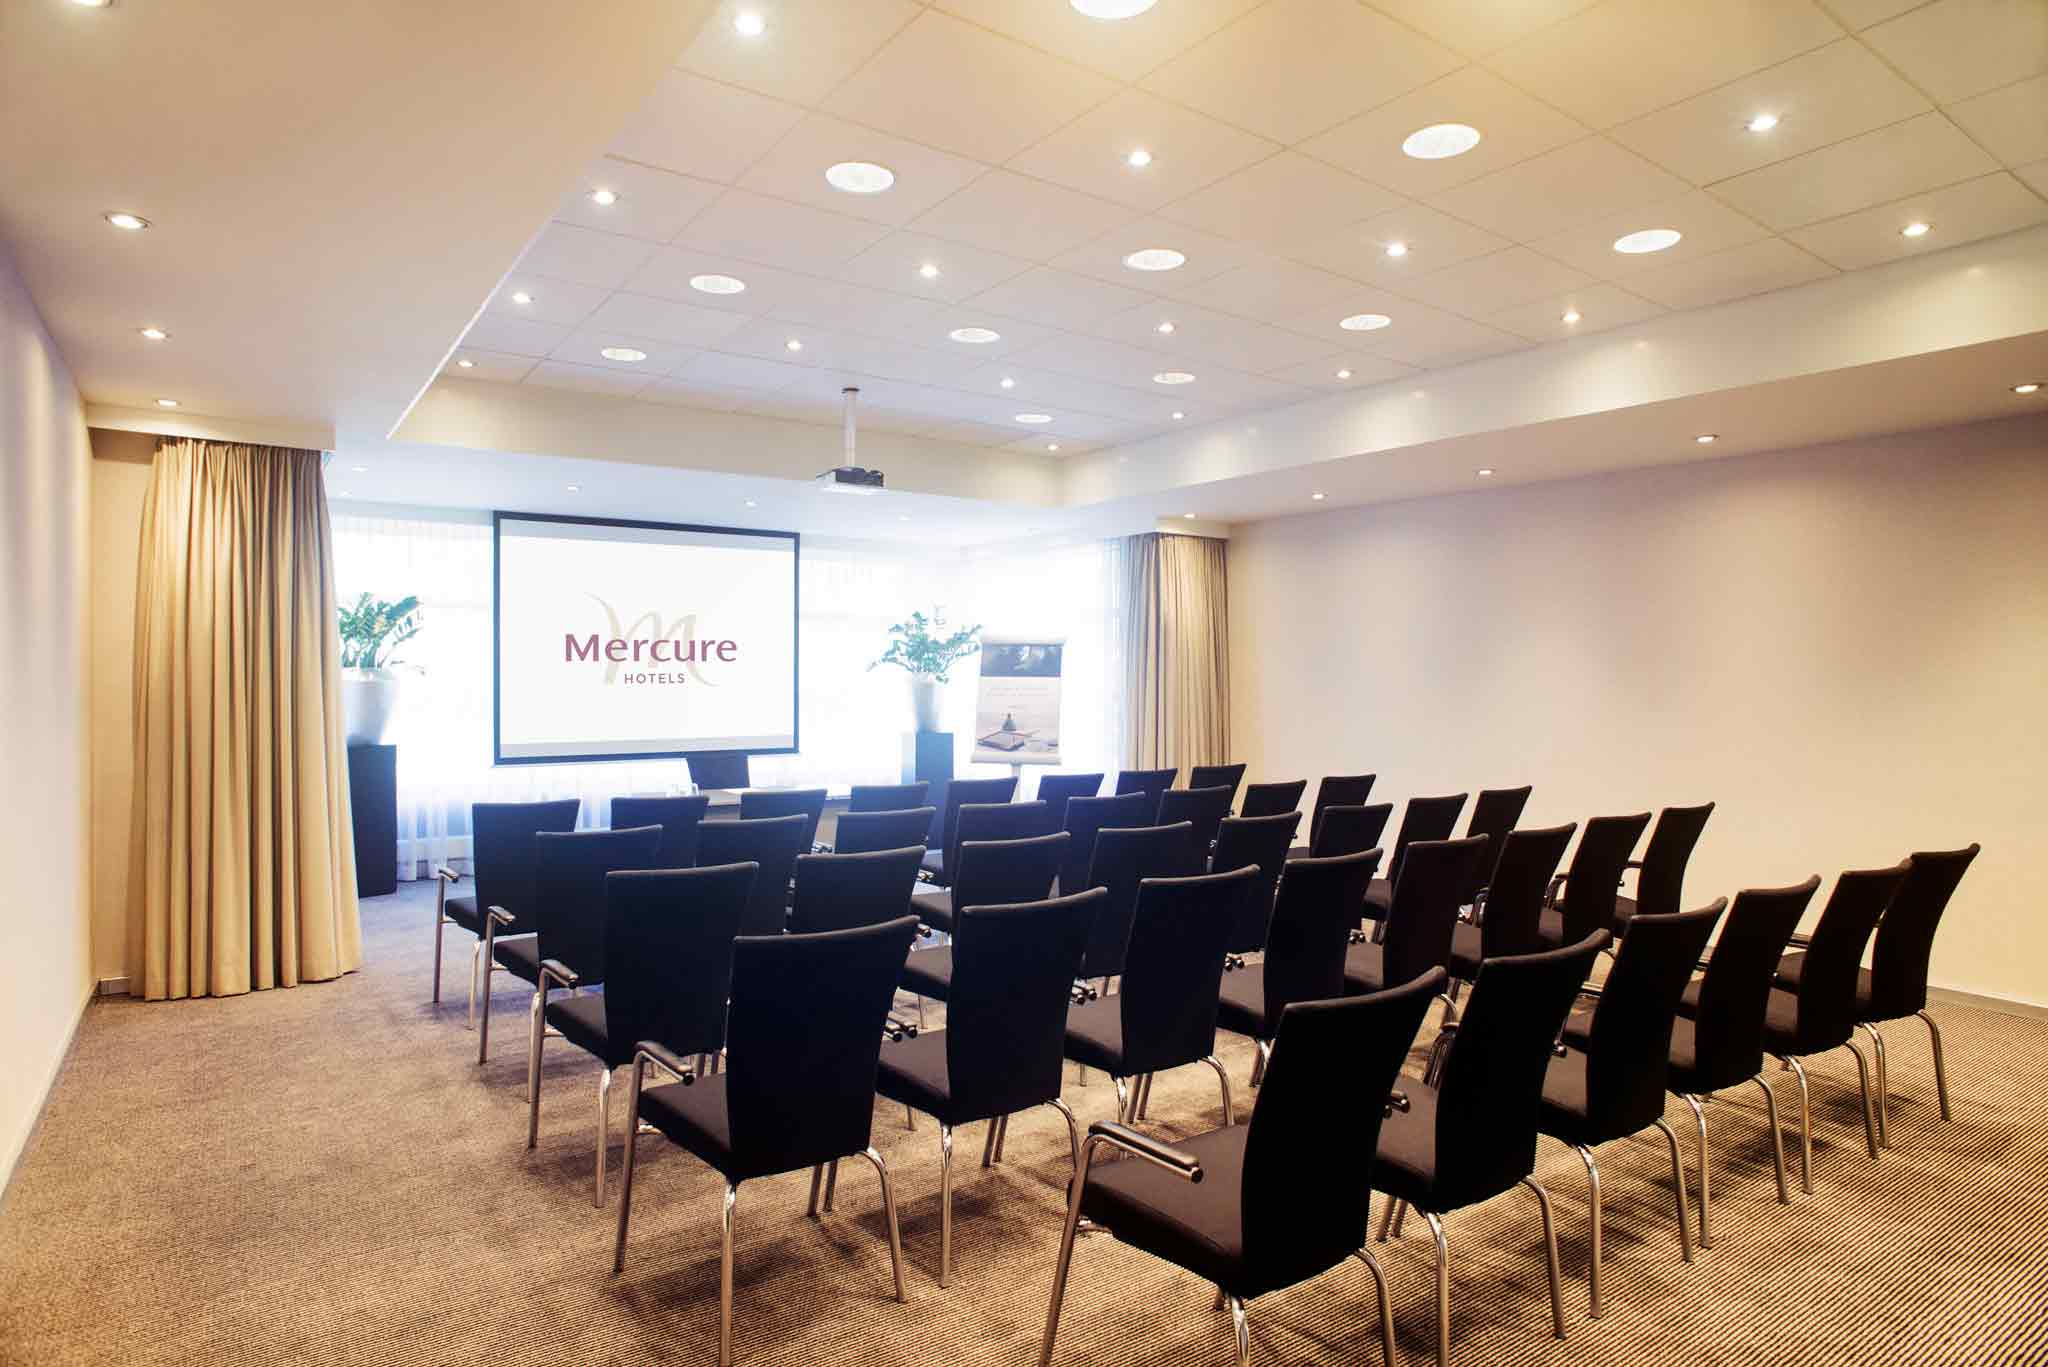 Mercure Den Haag Central 会議室